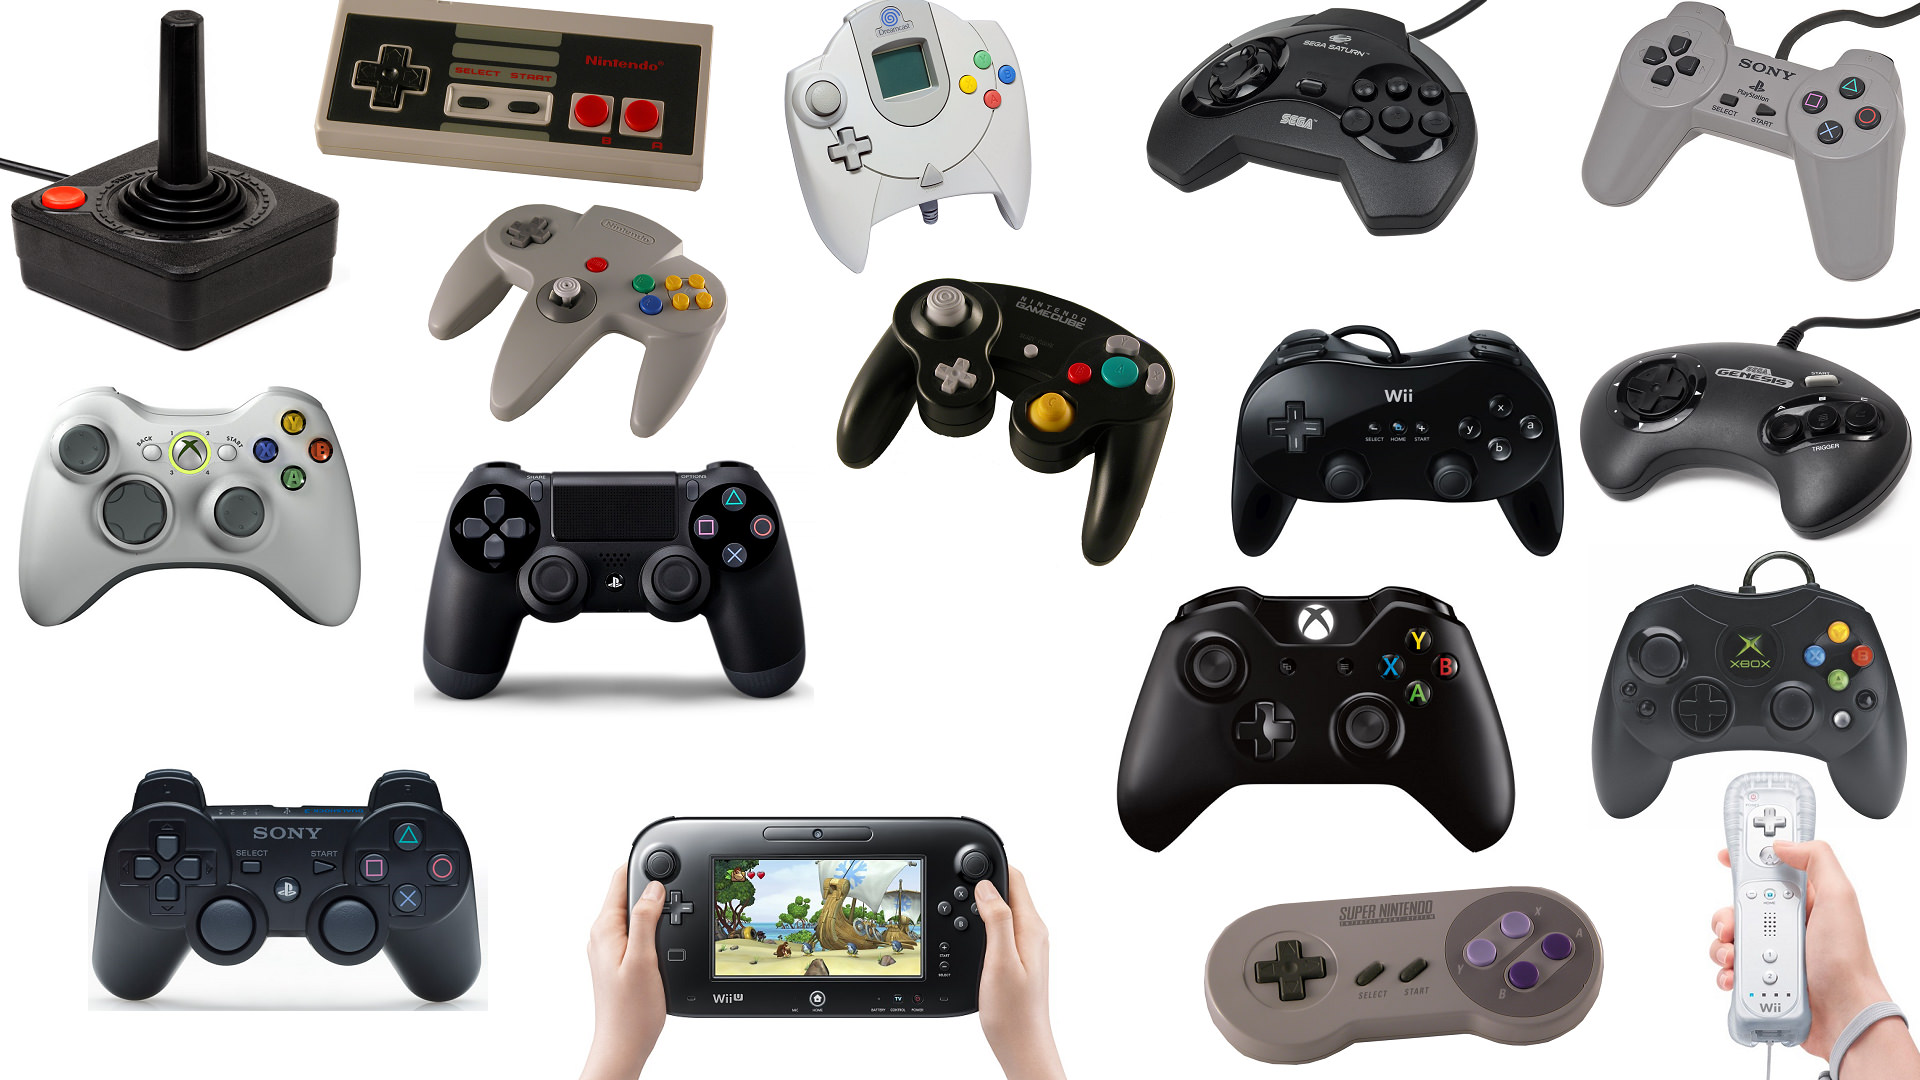 Top 5 Game Controllers of All Time